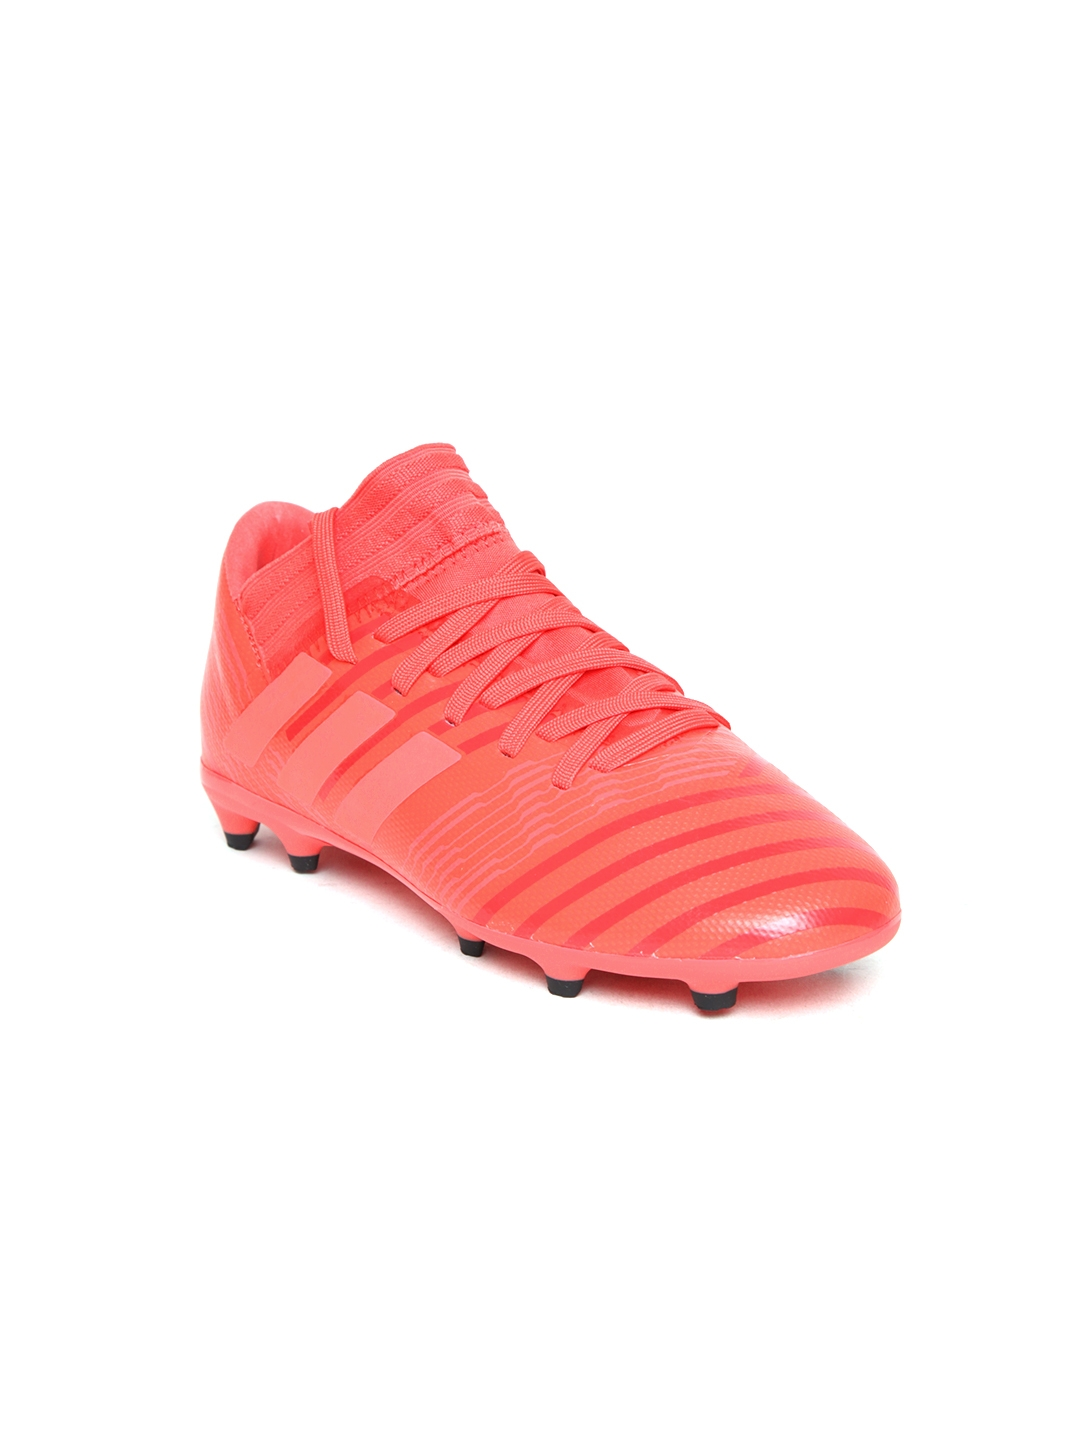 34cfc4bfb34e ADIDAS Boys Coral Orange NEMEZIZ 17.3 FG Patterned Football Shoes. Best  Price: ...